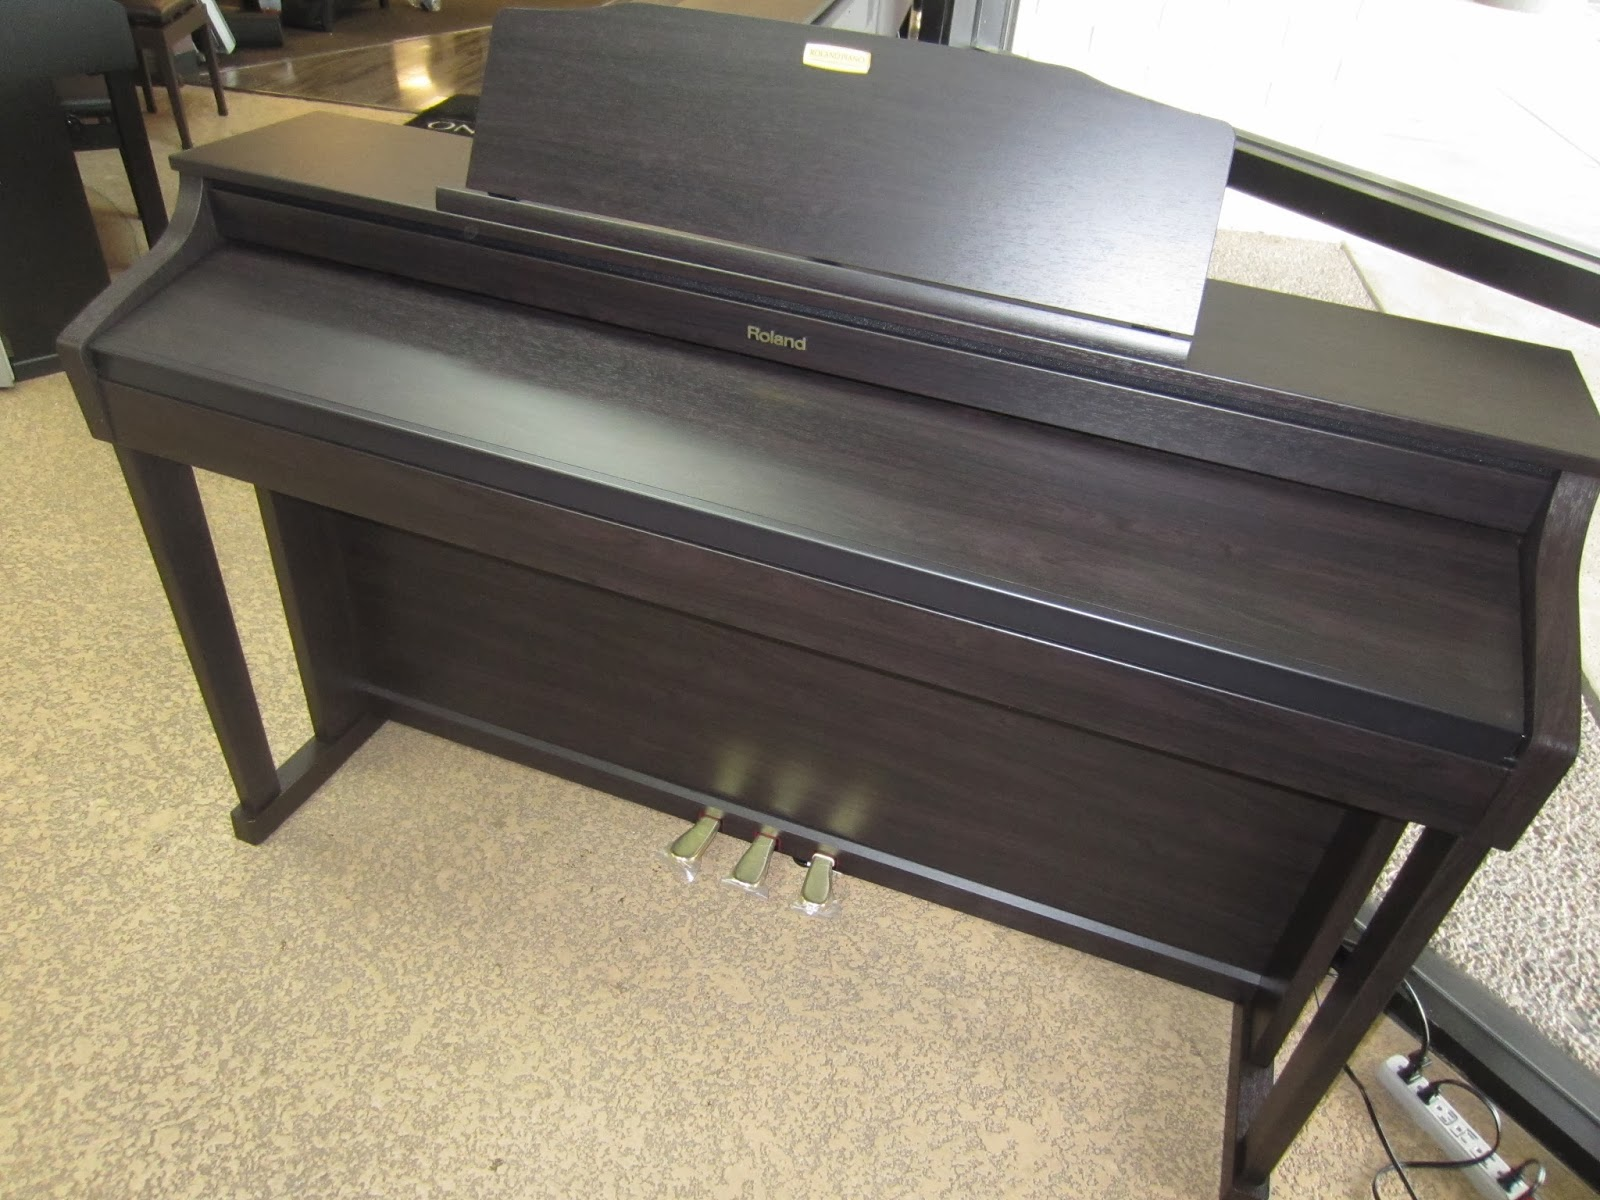 Roland HP506 digital piano